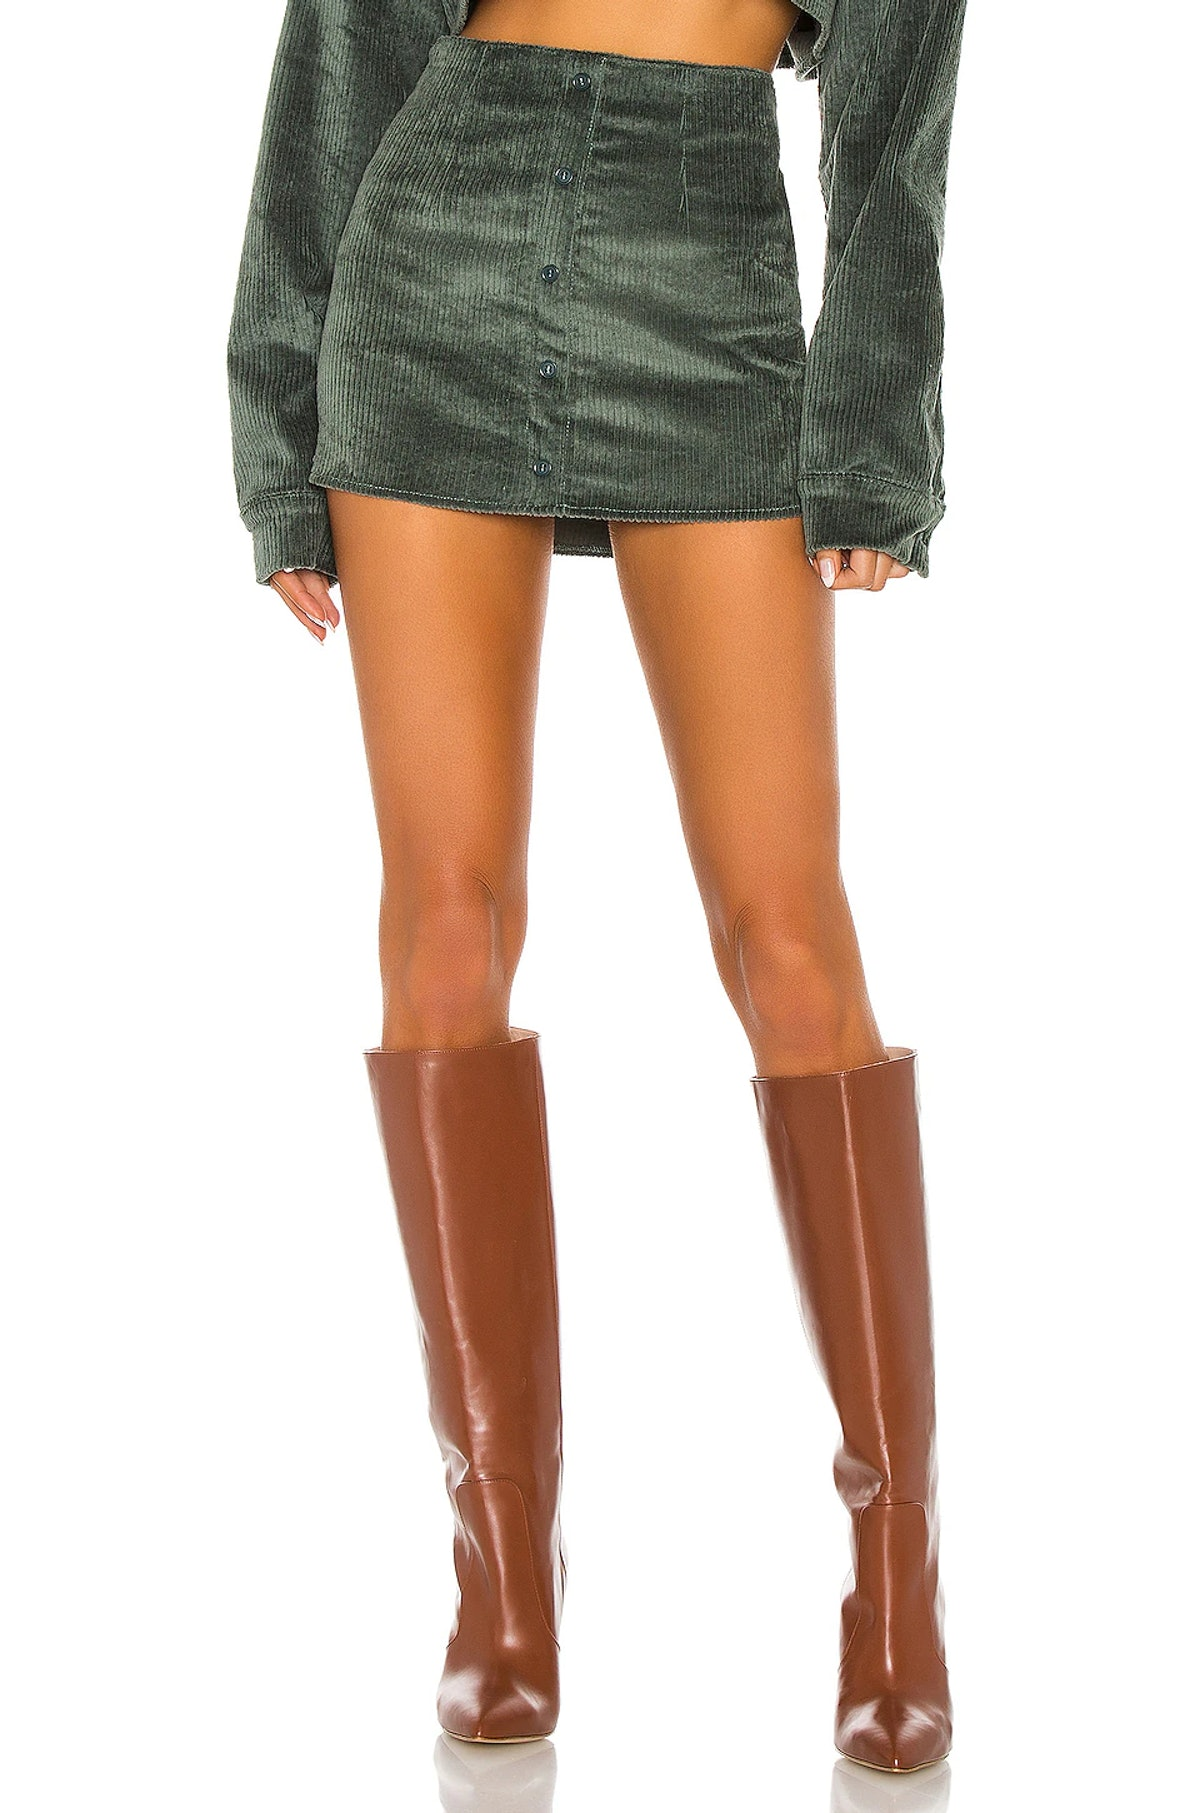 Dark green corduroy button up skirt from Danielle Guizio, available to shop via Revolve.